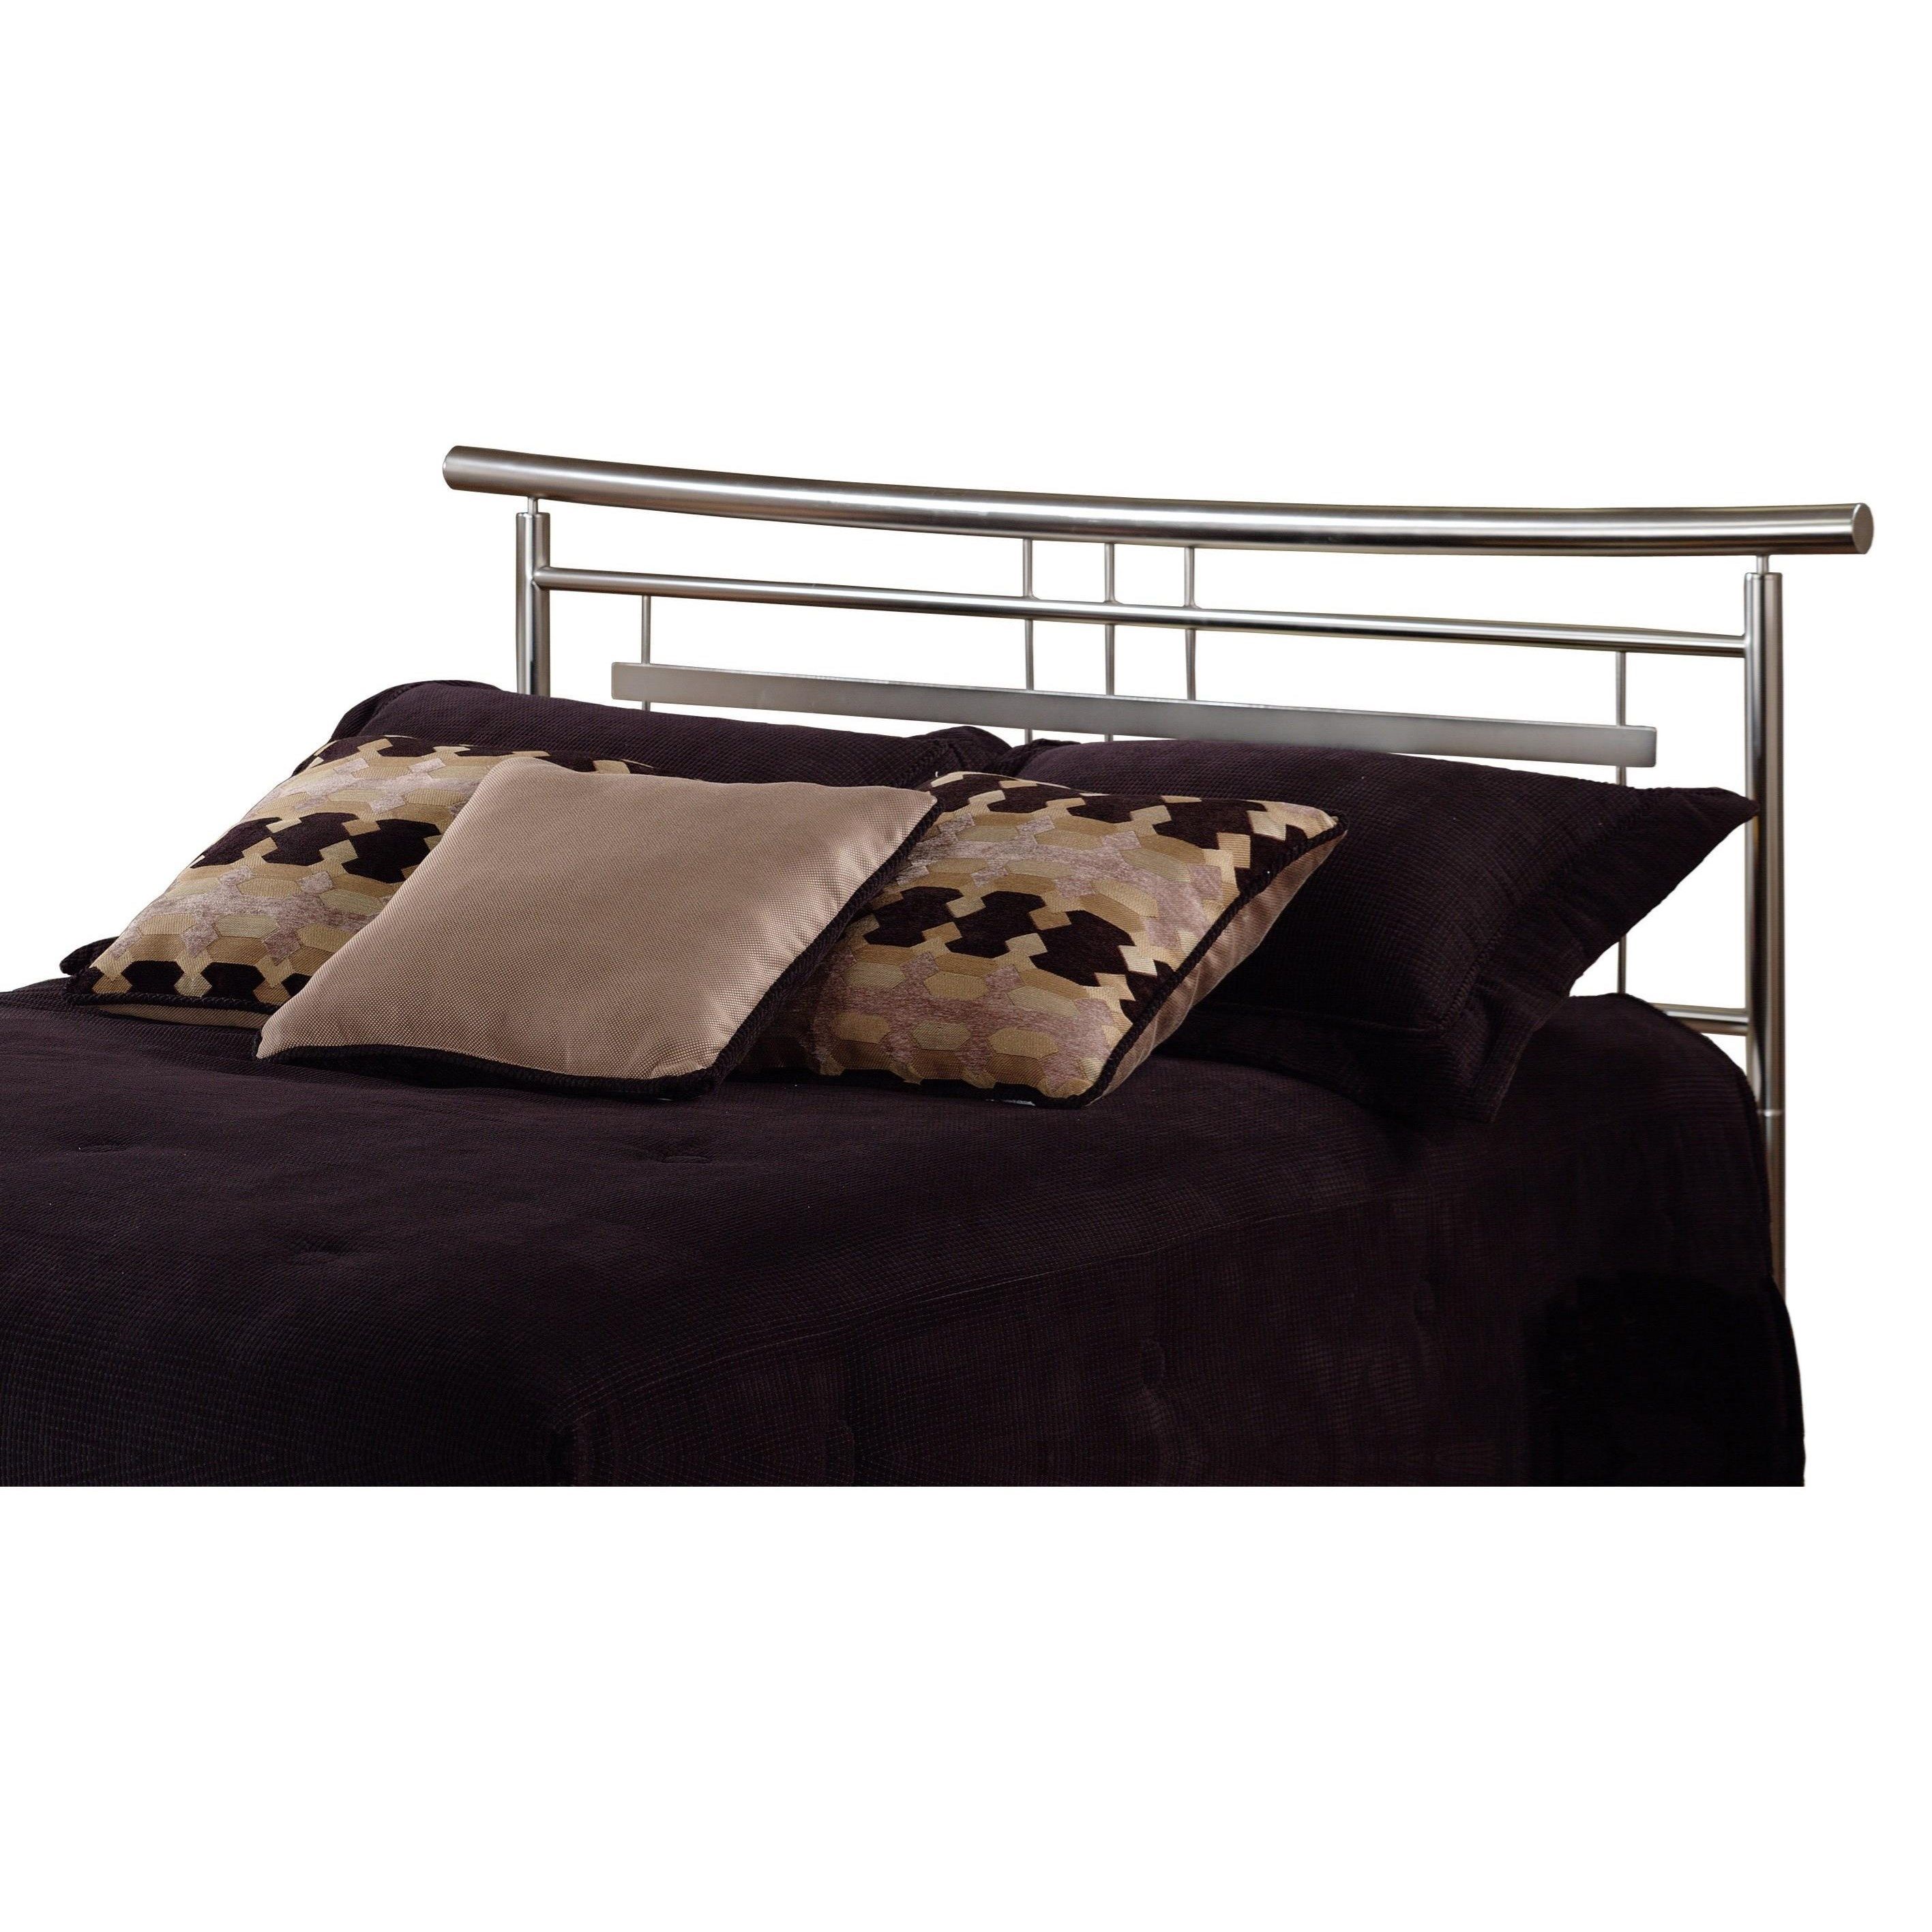 Hillsdale Metal Beds King Soho Headboard - Item Number: 1331HKR